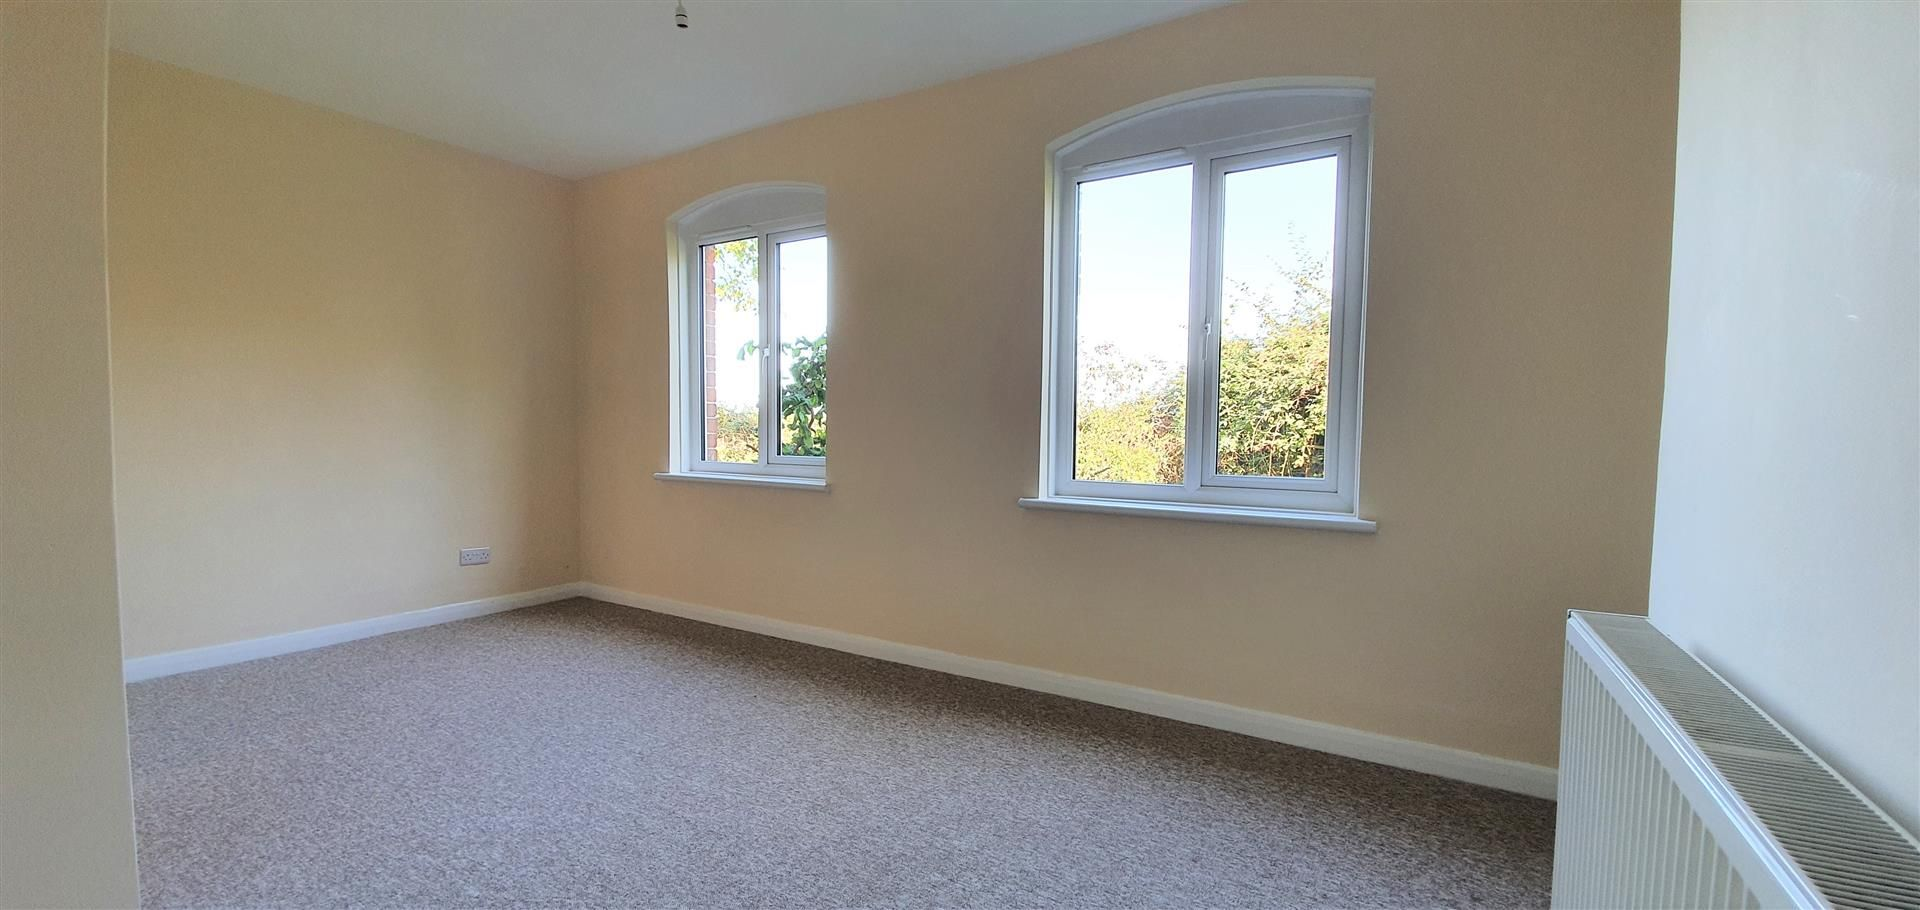 4 bed house to rent in Breinton  - Property Image 6